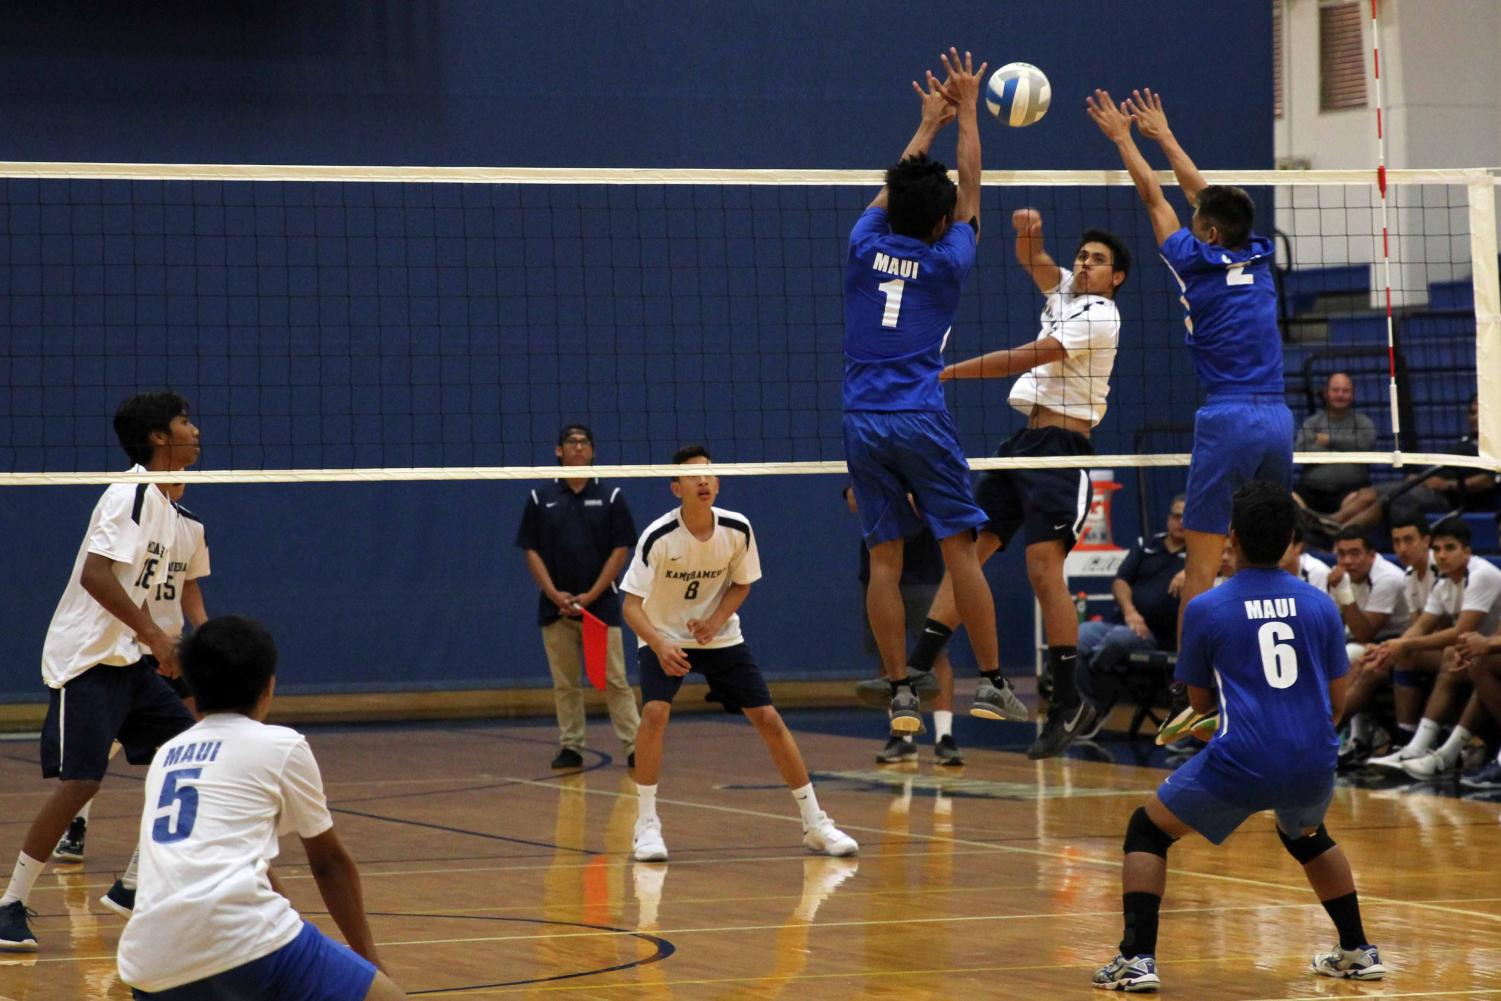 Senior Hinano Long hits the ball past junior Julius Benavidez and senior Rexie Butihi. The Warriors defeated Maui High, 3-0, at Kaʻulaheanuiokamoku Gymnasium Tuesday at 6 p.m.